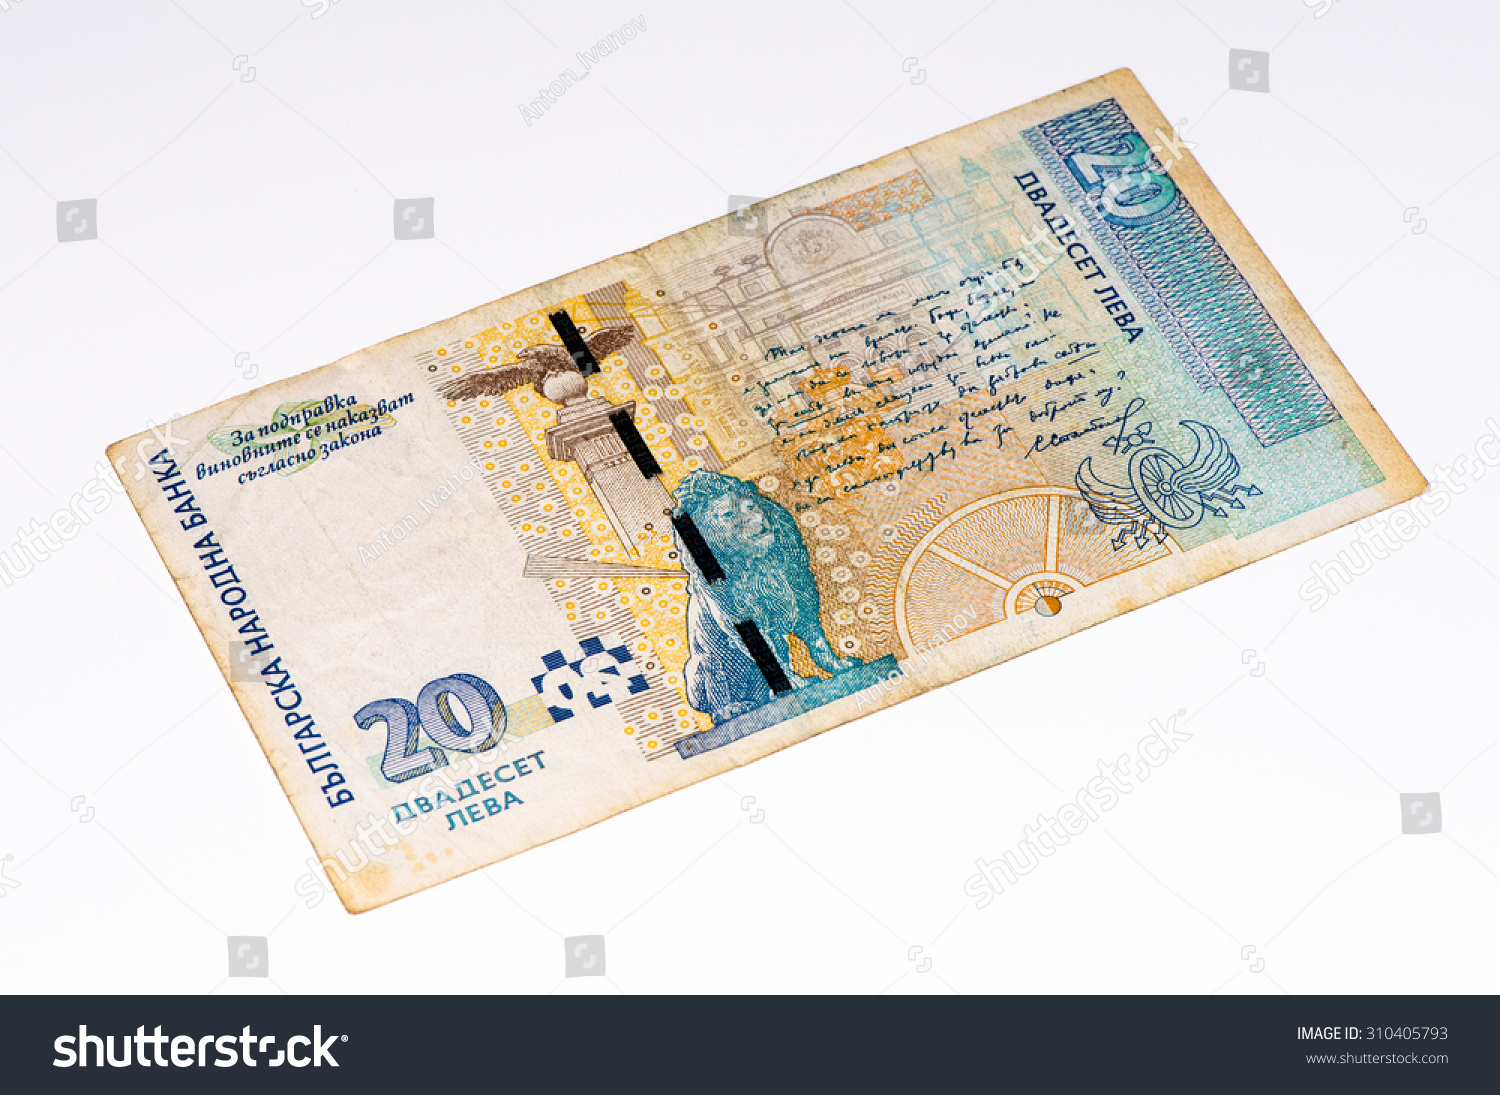 20 bulgarian lev bank note lev stock photo 310405793 shutterstock 20 bulgarian lev bank note lev is the national currency of bulgary biocorpaavc